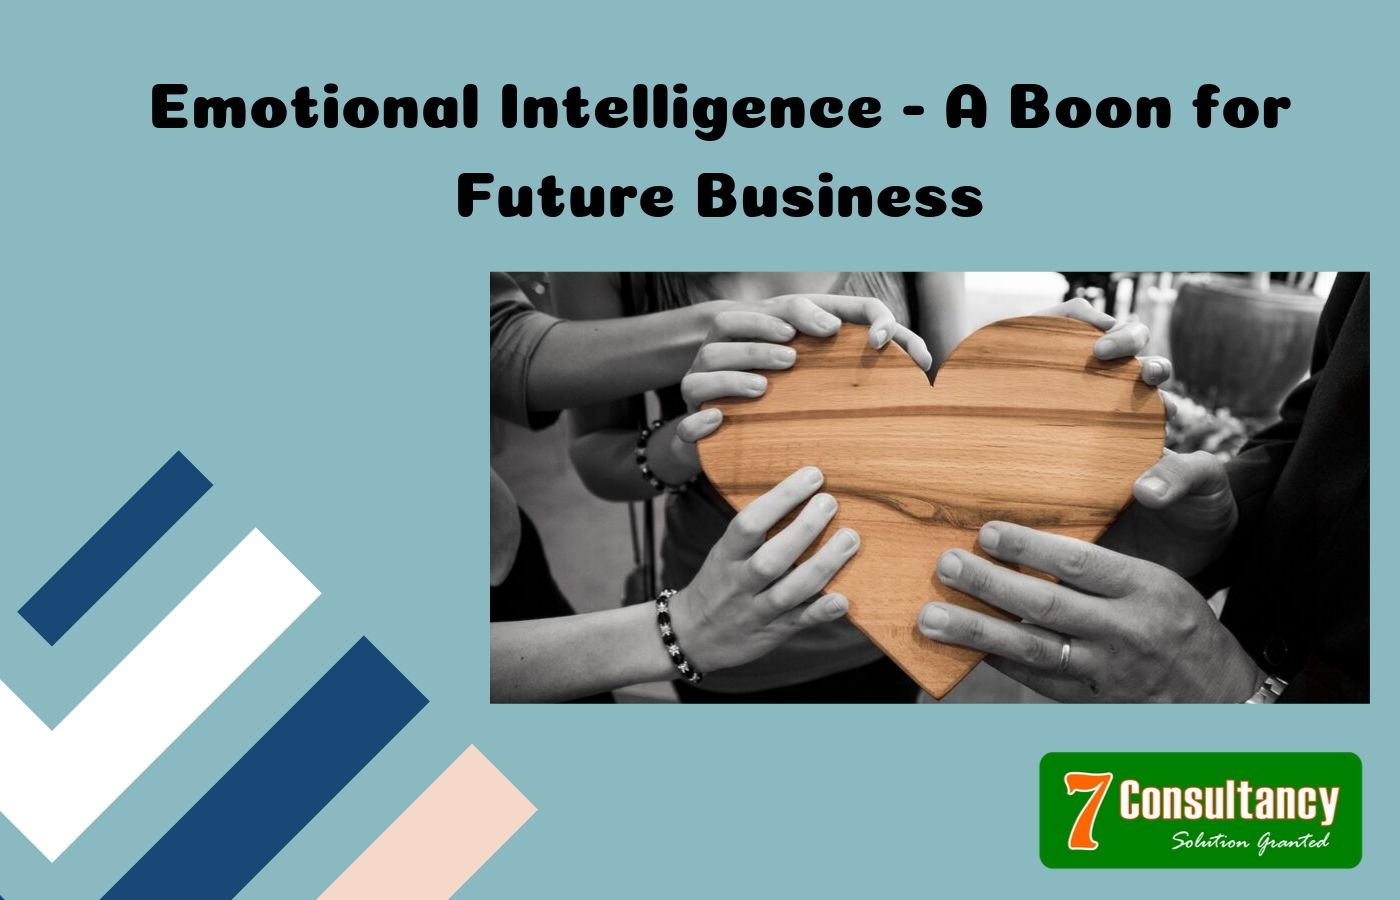 Emotional Intelligence - A Boon for Future Business